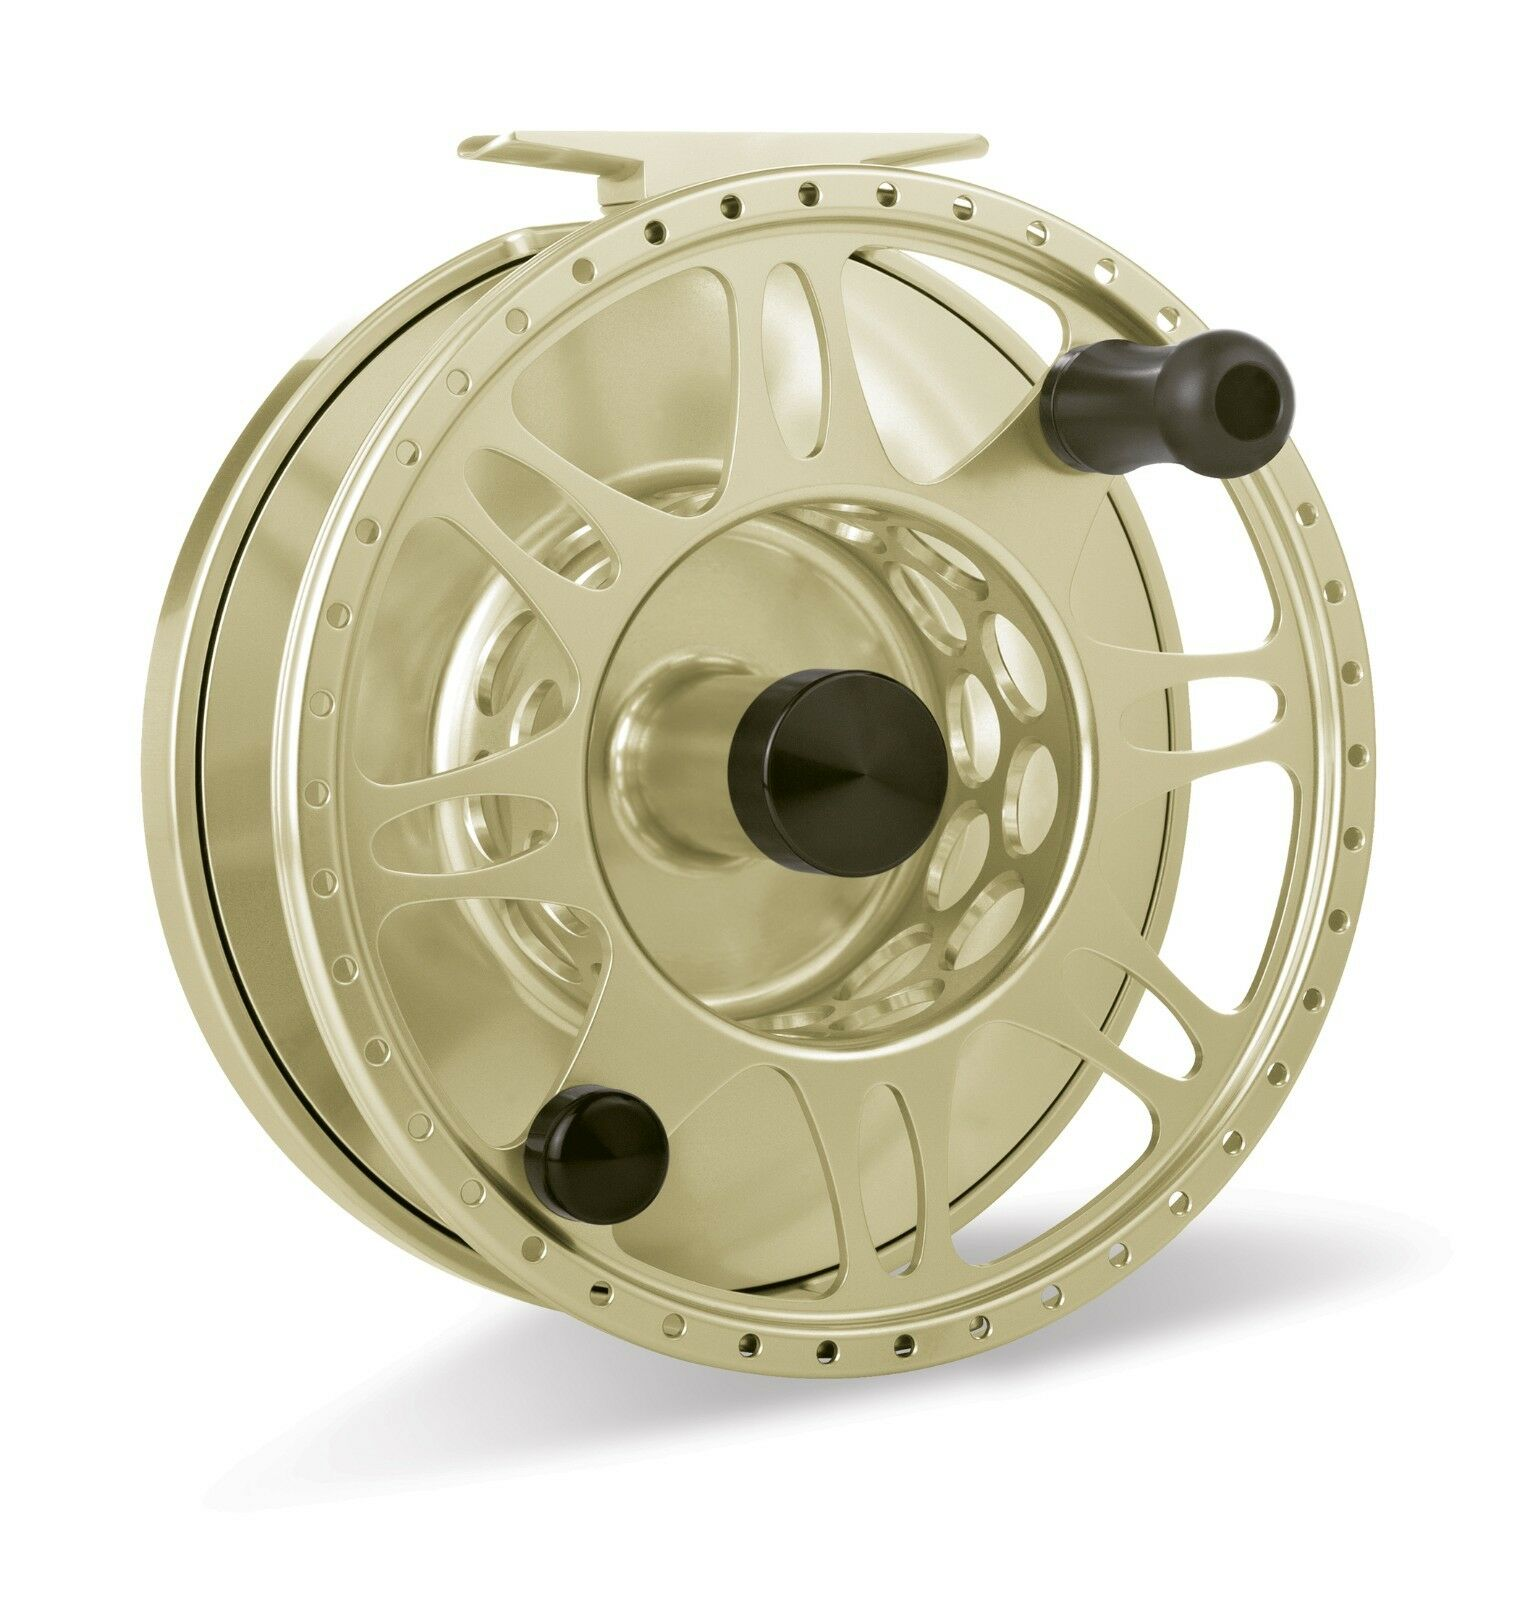 Tibor Pacific Fly Reel, oro, NEW   FREE FLY LINE